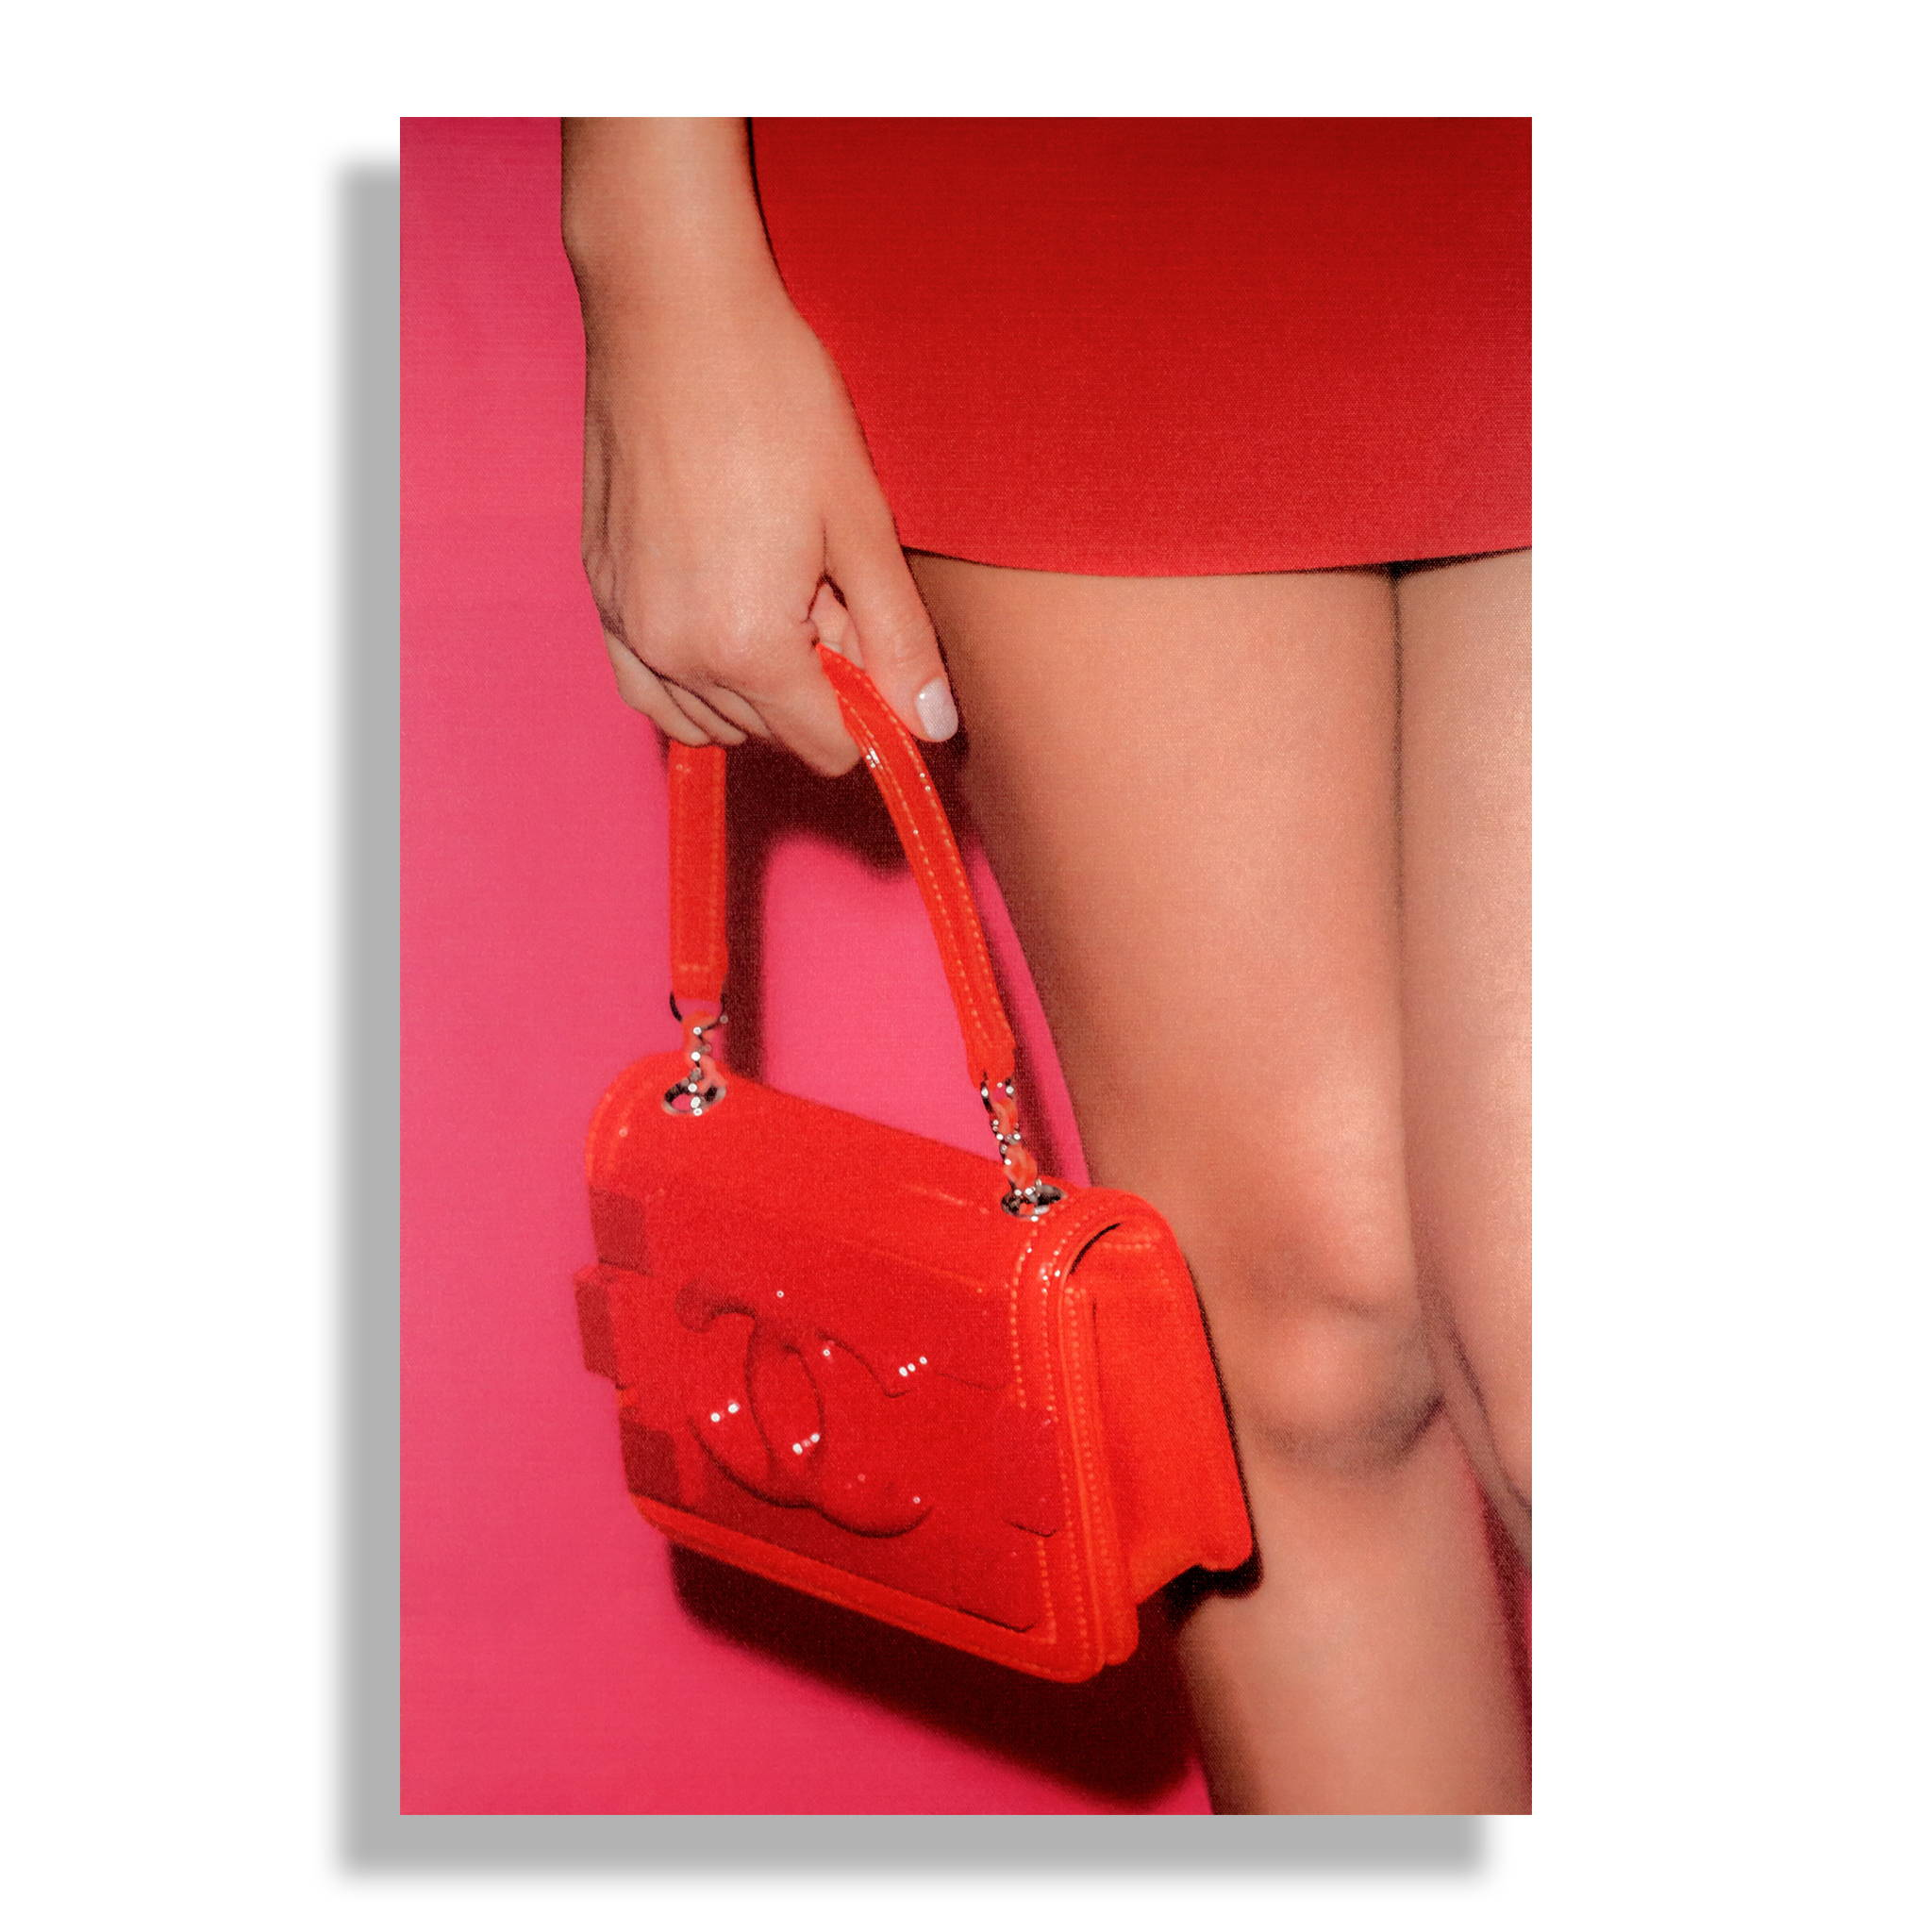 Fashion Wall Art Print - Candy Red - Recoveted